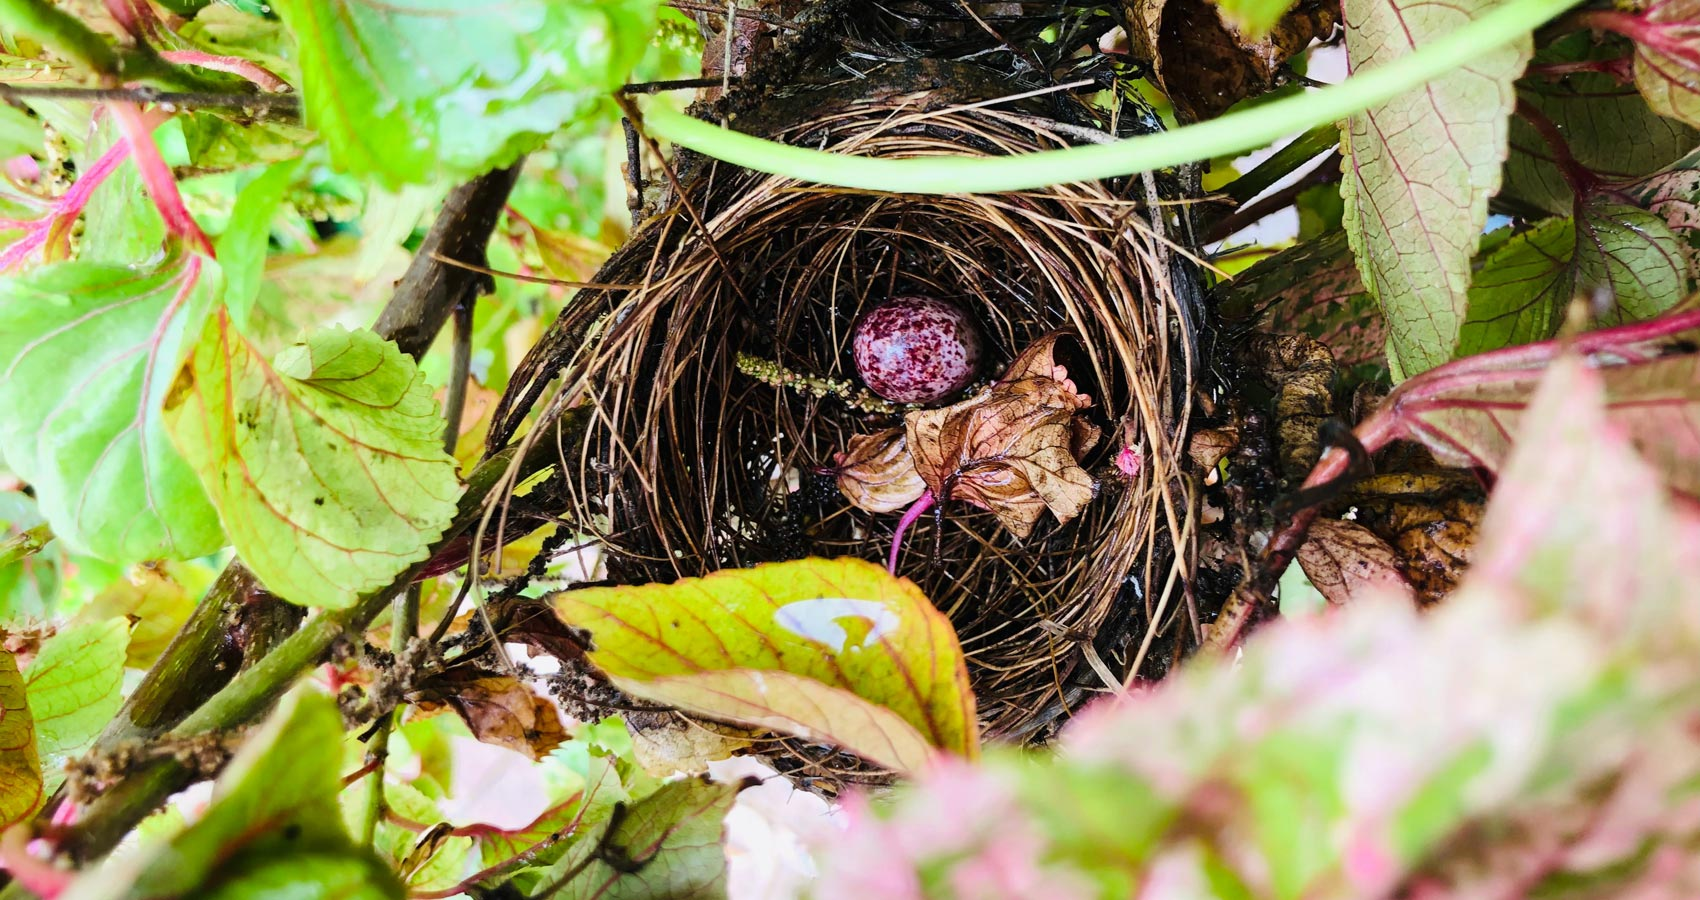 Hatched, a poem written by D.M. Velay at Spillwords.com